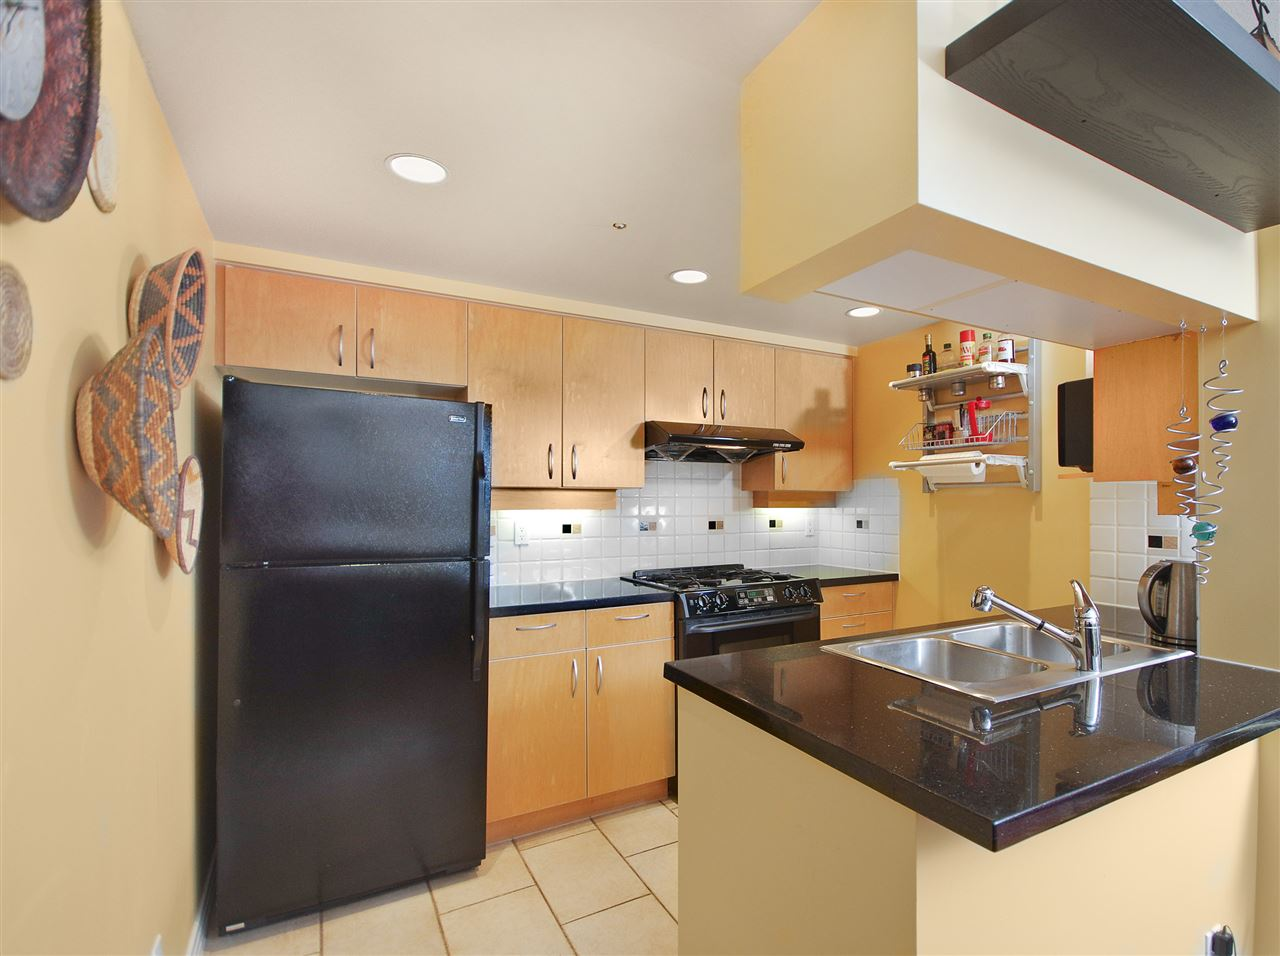 "Photo 5: 2108 198 AQUARIUS Mews in Vancouver: Yaletown Condo for sale in ""THE AQUARIUS"" (Vancouver West)  : MLS® # R2125703"